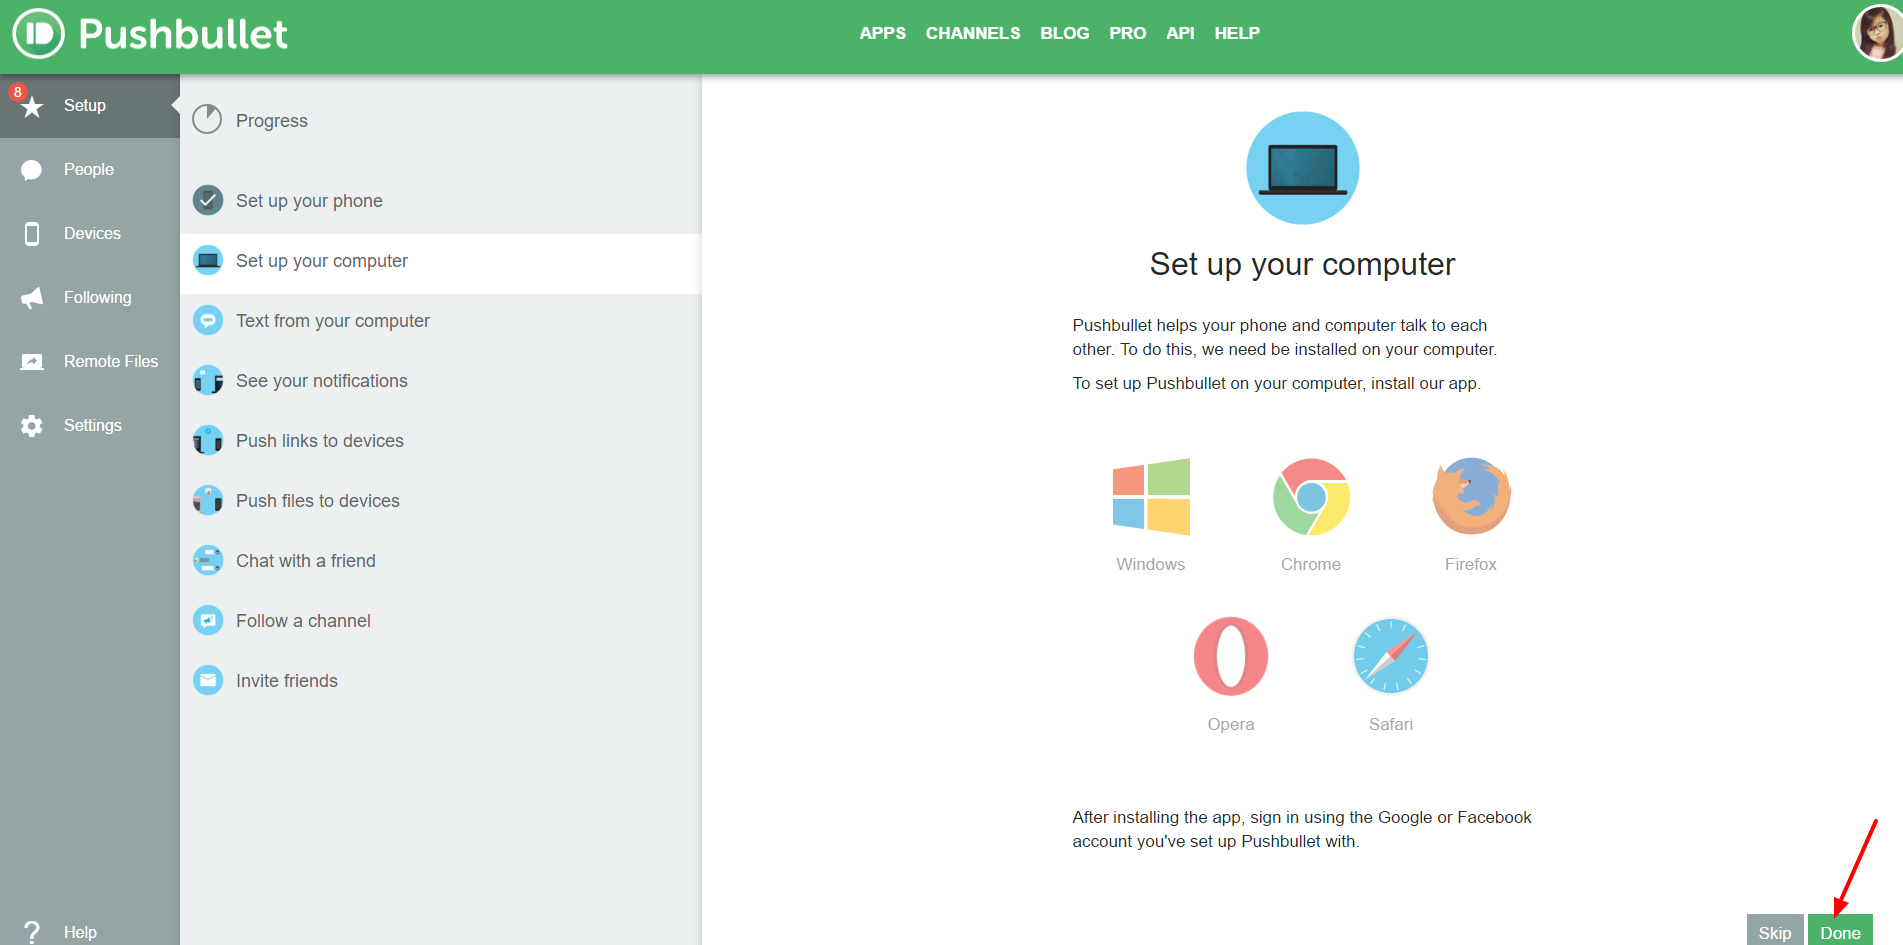 Set up your computer pushbullet